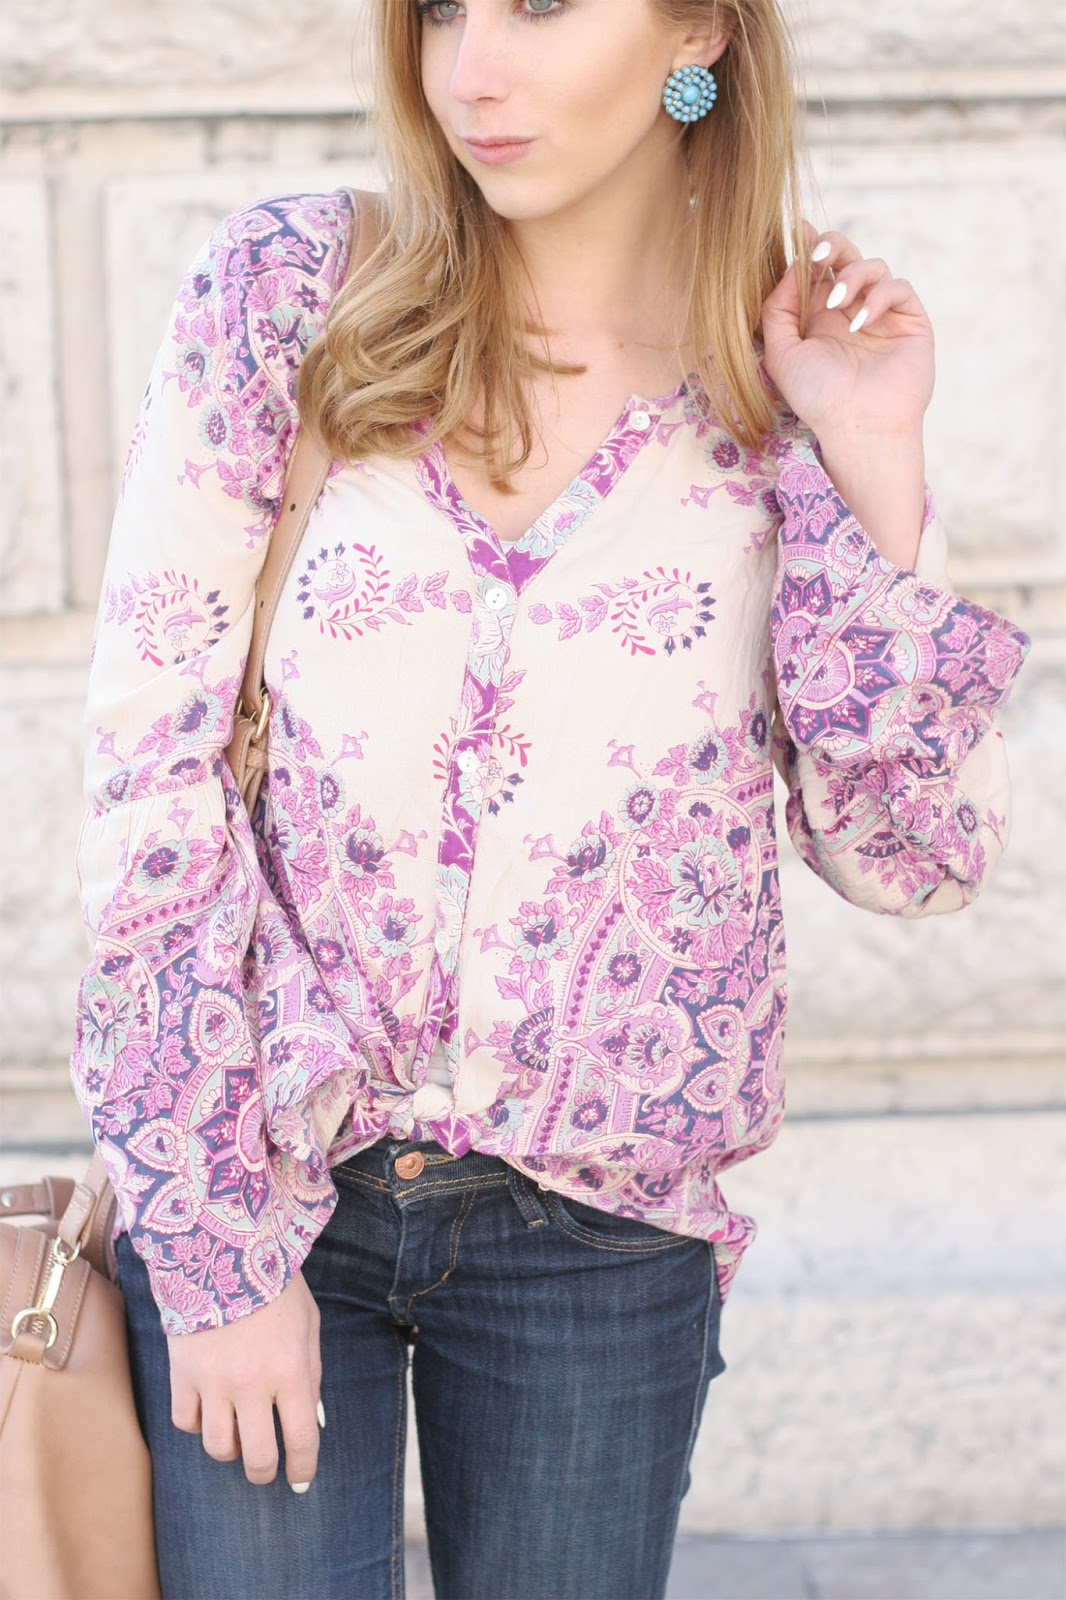 paisley-blouse-with-statement-earrings-and-white-gel-nails